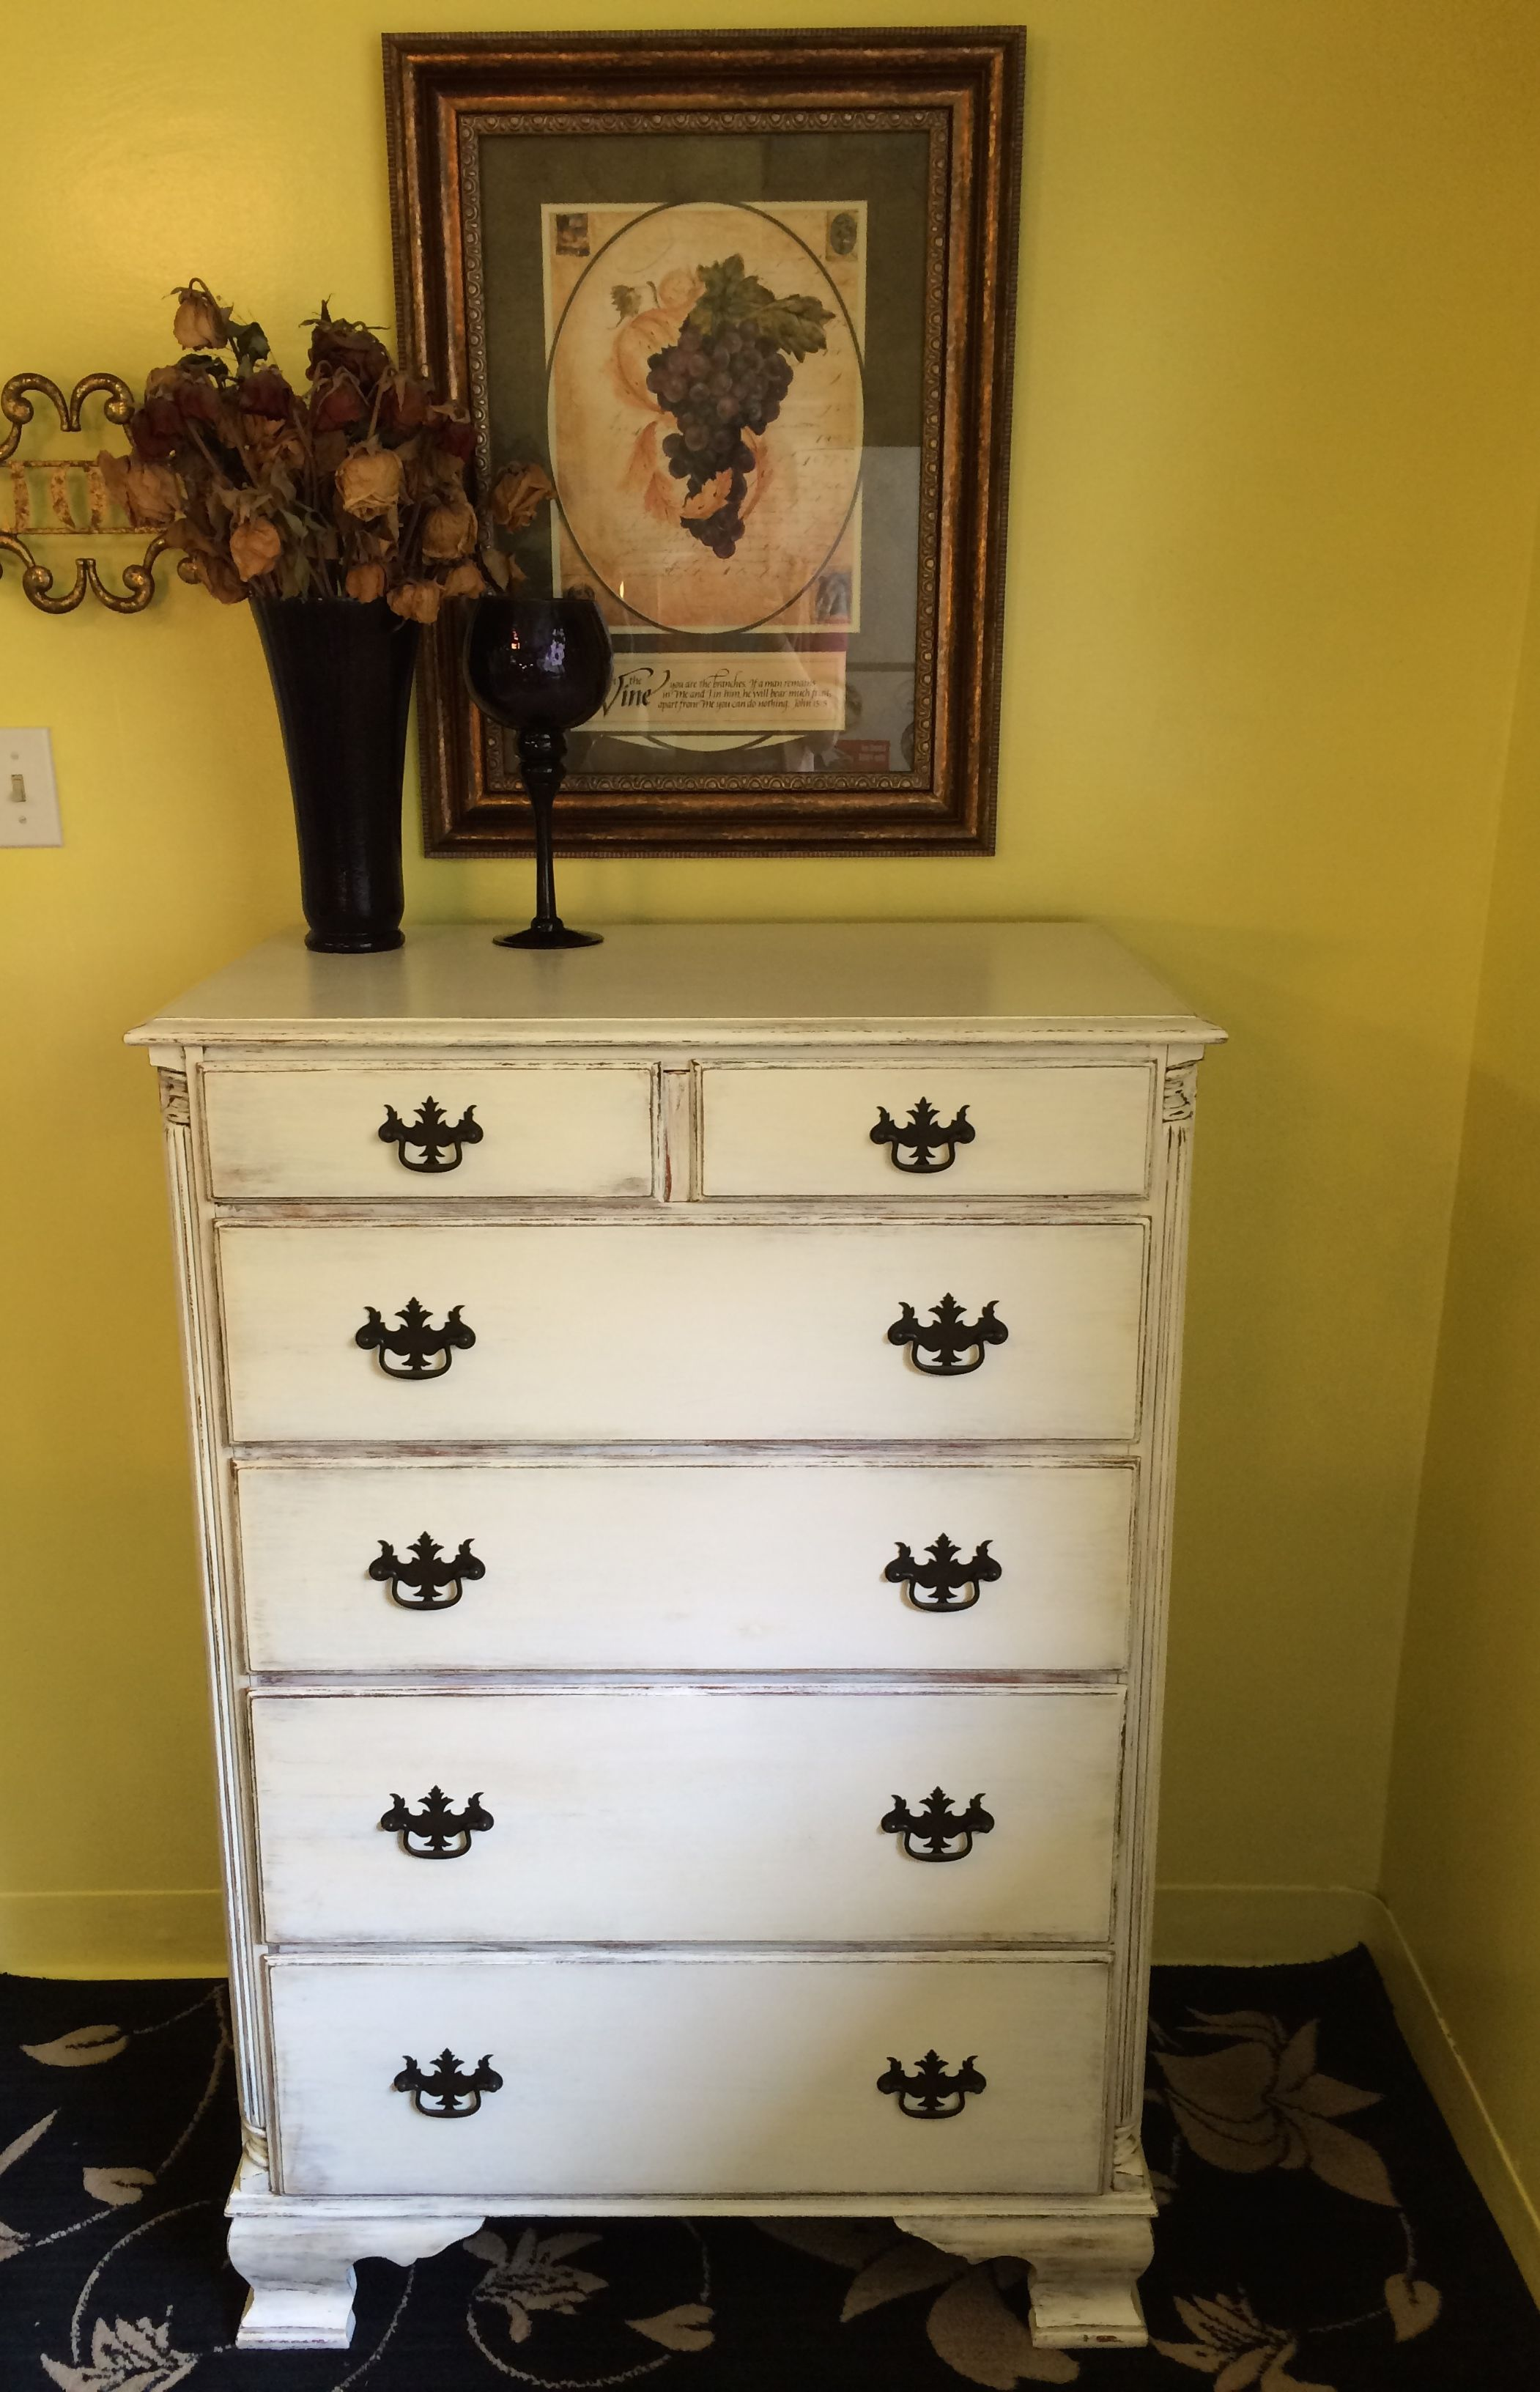 Delicieux Shabby Chic Distressed Antique Dresser. To See My Furniture 4 Sale Or If  You Would